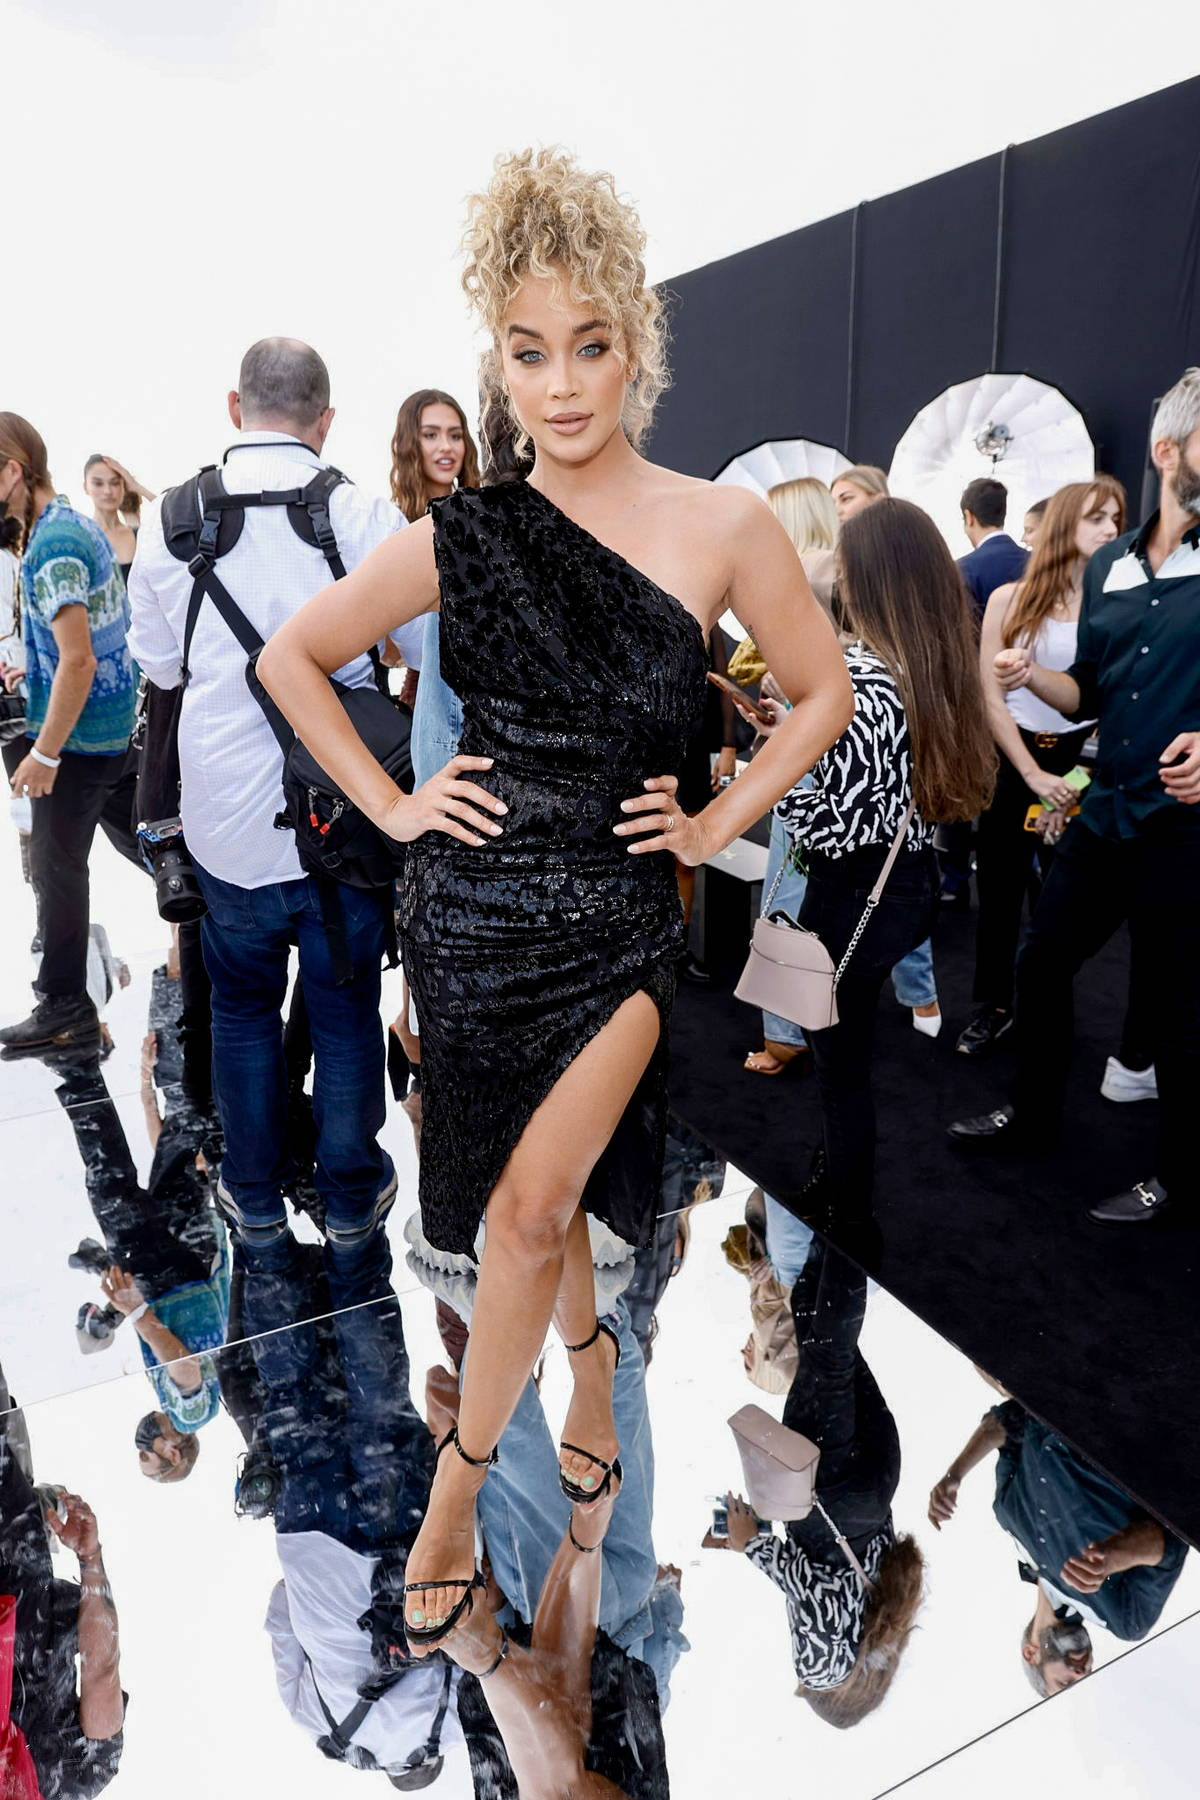 Jasmine Sanders attends the Dundas x Revolve fashion show during New York Fashion Week in New York City